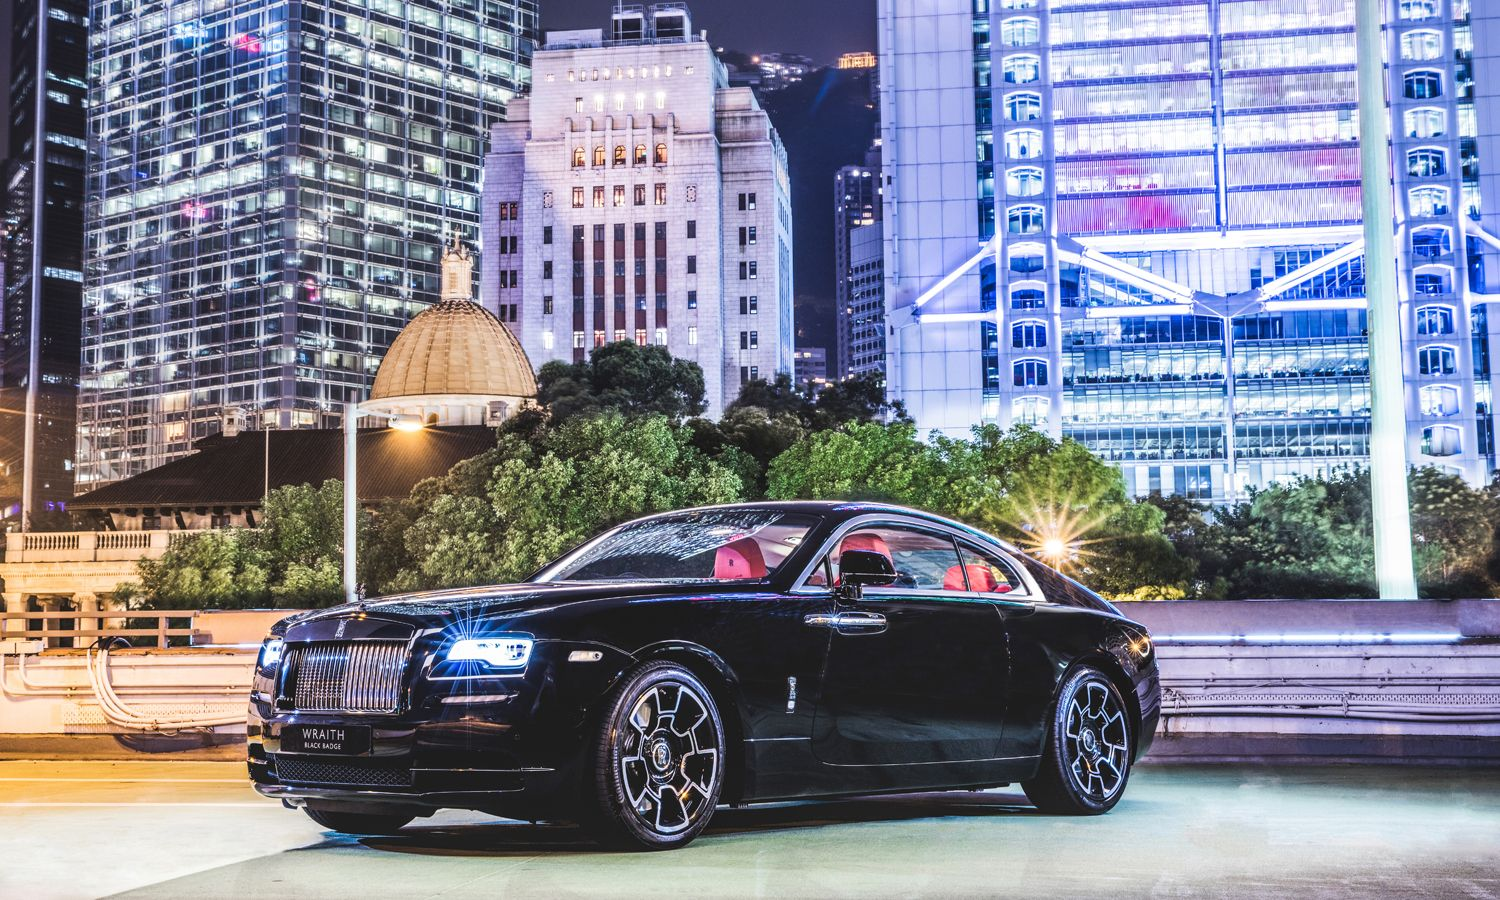 The Rolls-Royce For The Next Generation